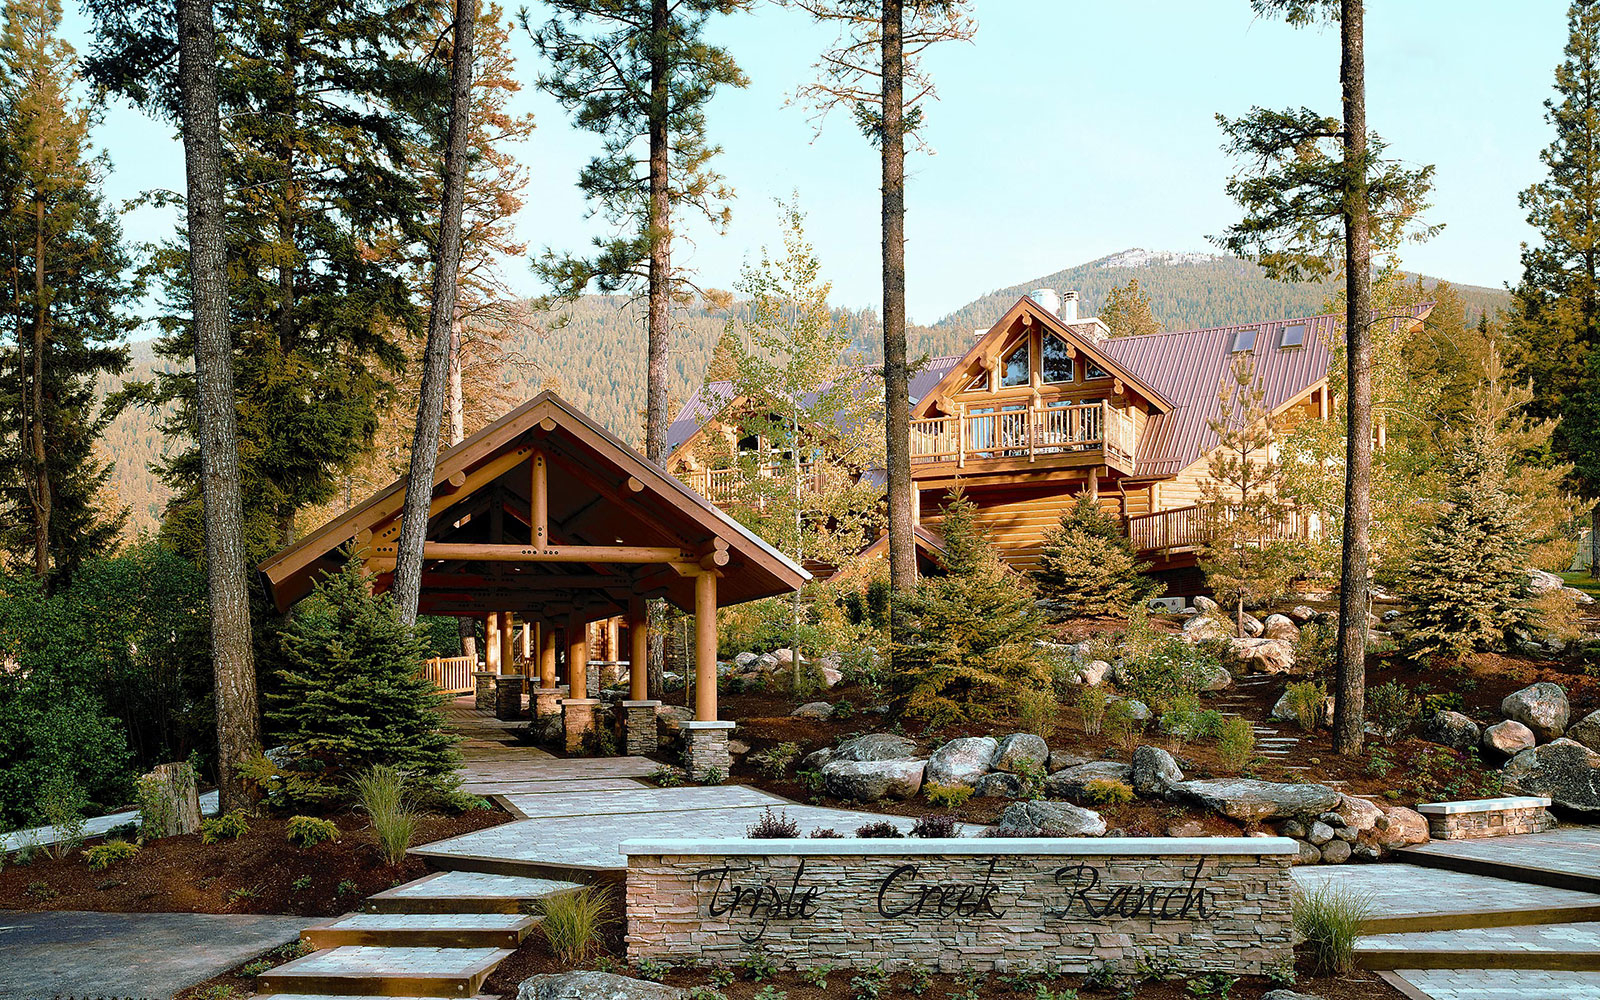 No. 10: Triple Creek Ranch, Darby, Montana